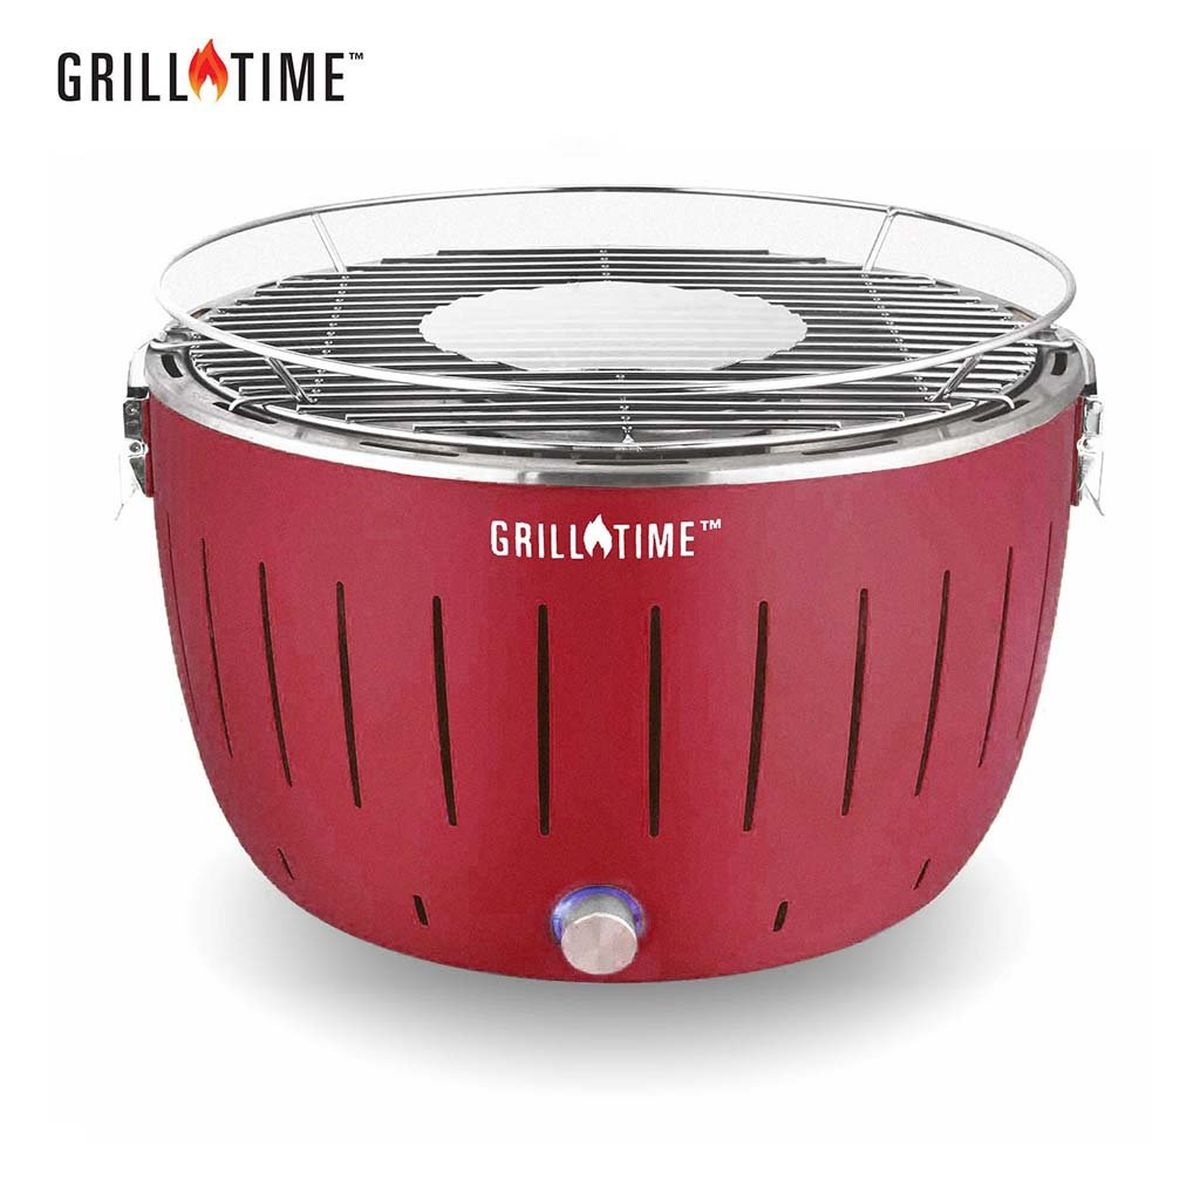 Grill Time Tailgater GT Regular Pack Portable Charcoal Grill - Red